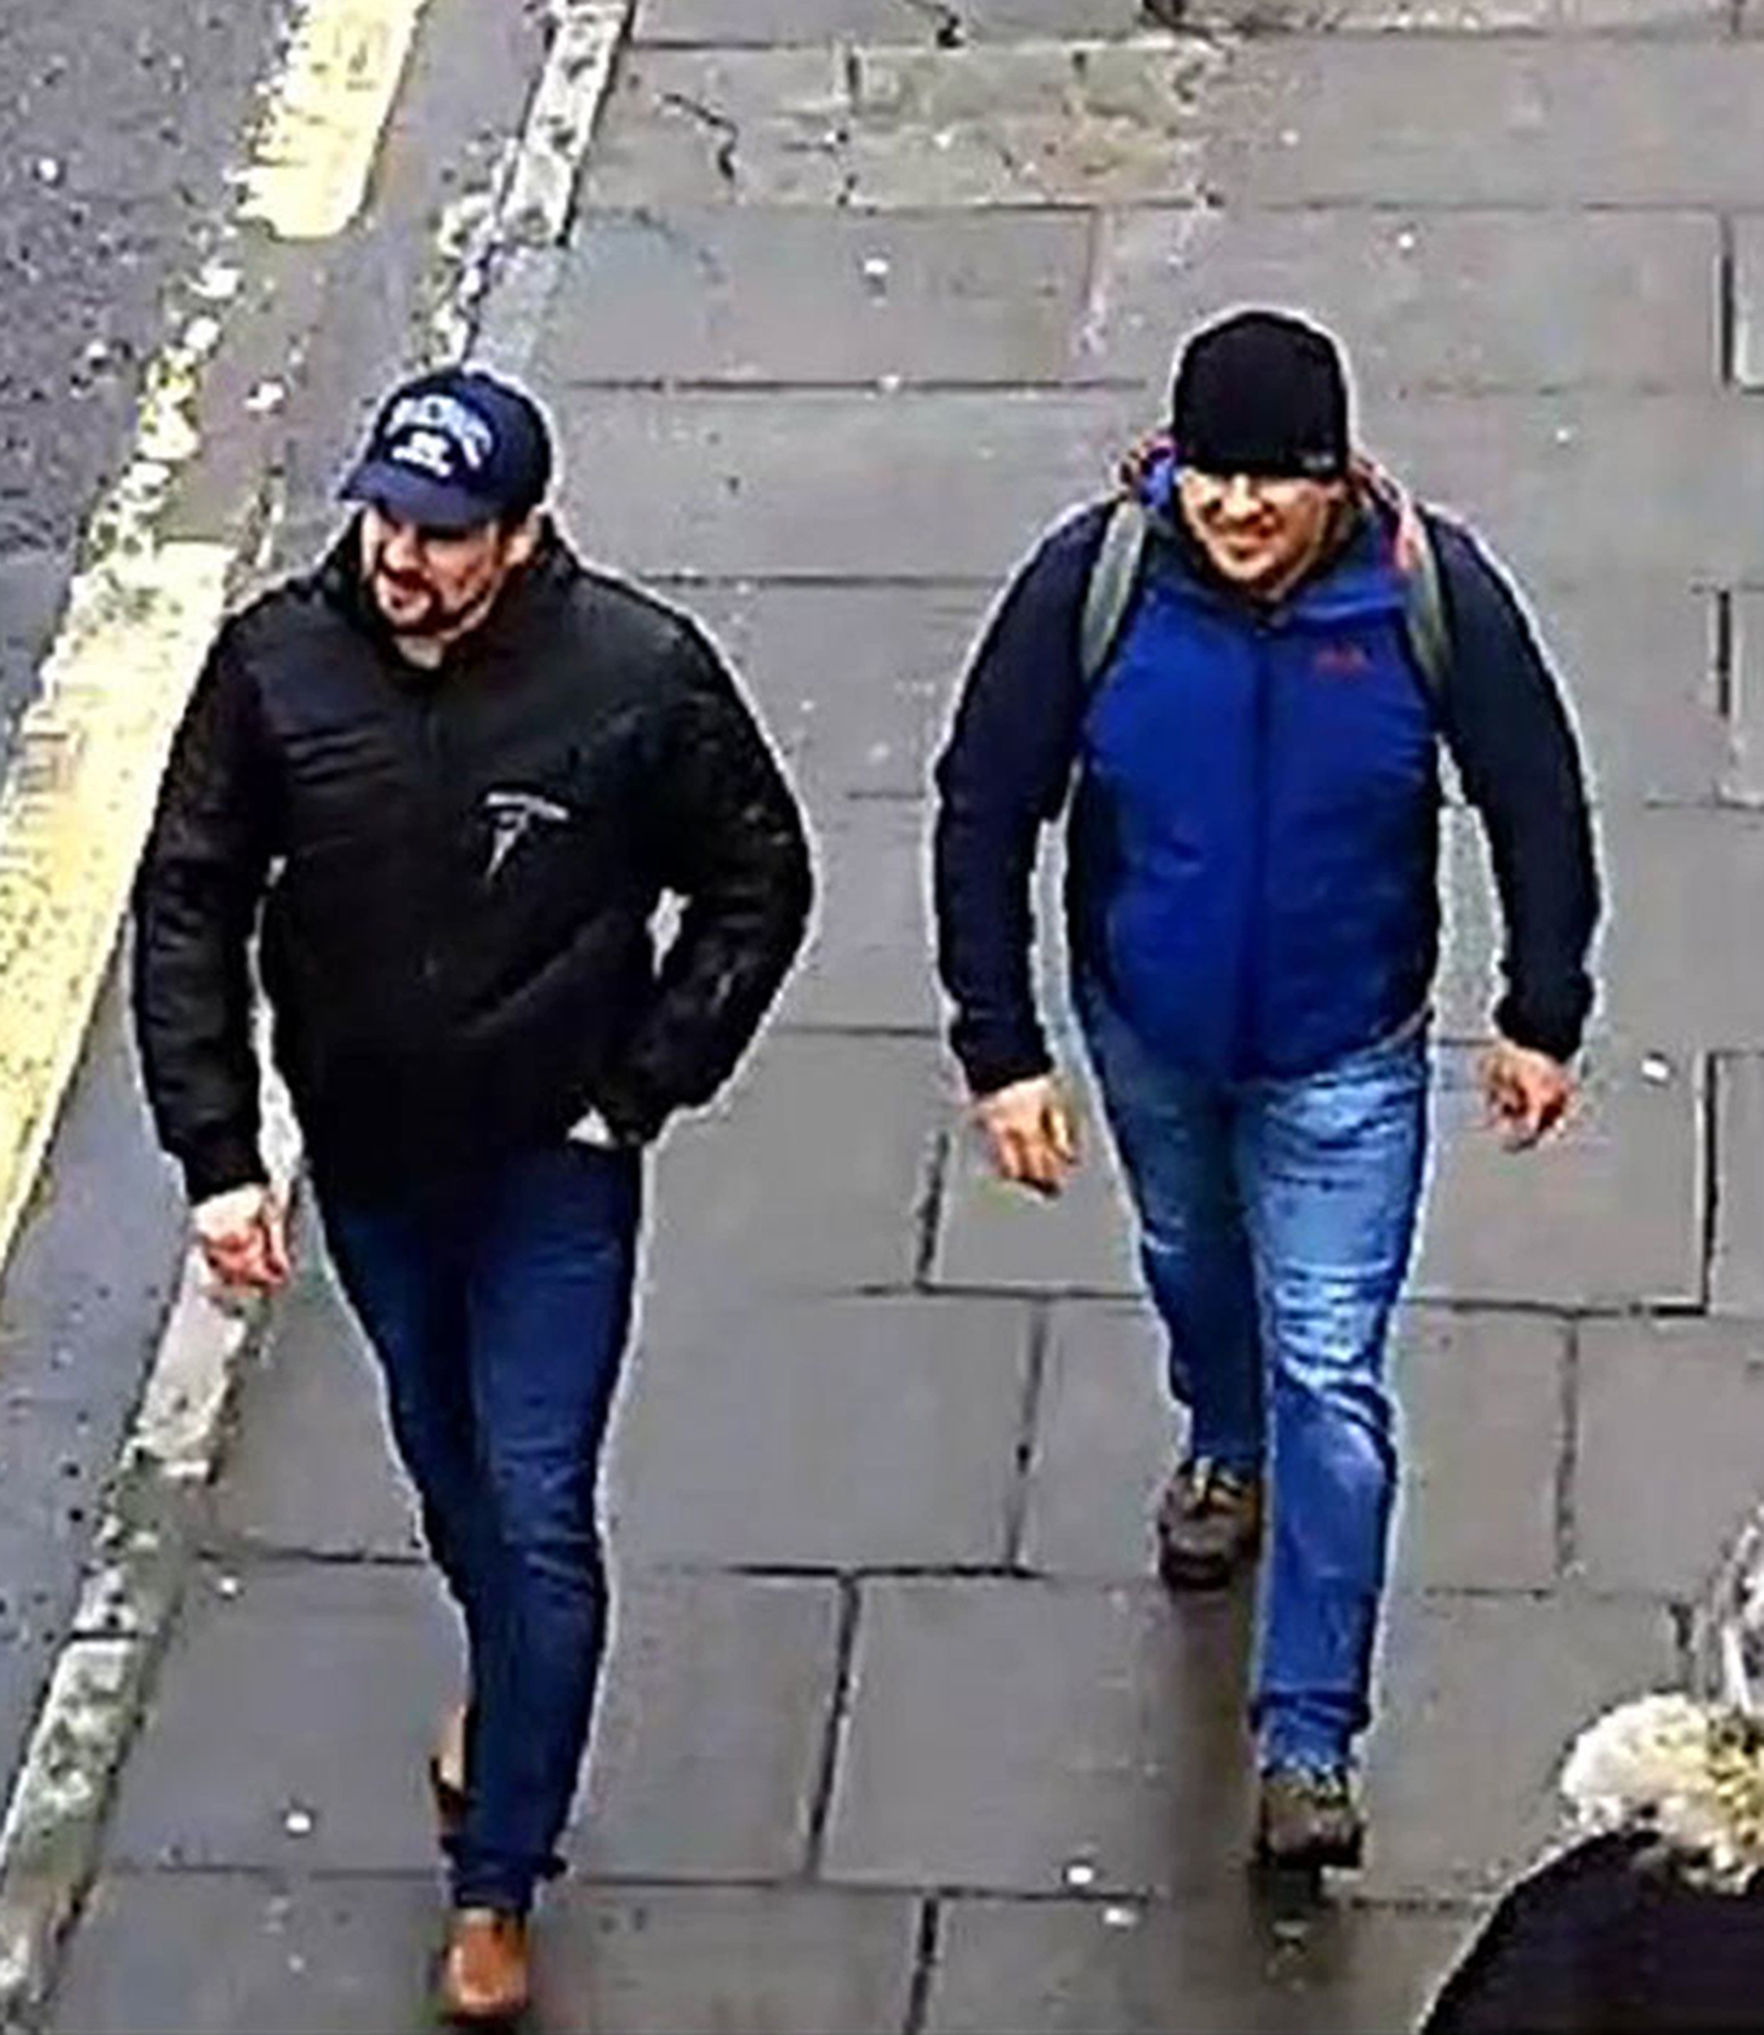 Handout CCTV image issued by the Metropolitan Police of Russian Nationals Ruslan Boshirov and Alexander Petrov on Fisherton Road, Salisbury at 13:05hrs on March 4 2018. The war of words with Russia following the Novichok attack has escalated, with a senio